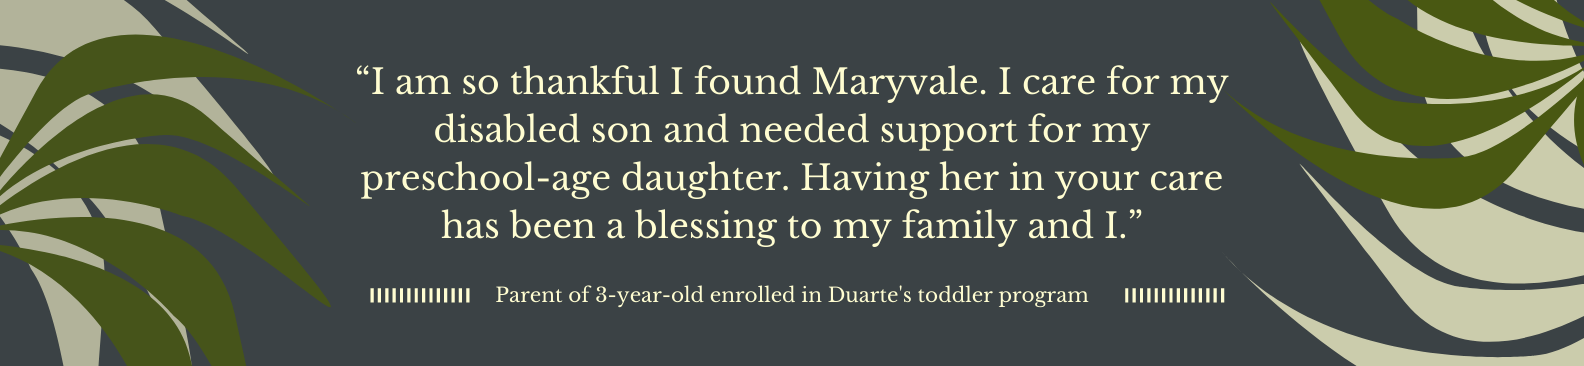 Maryvale Quote Graphic[1]